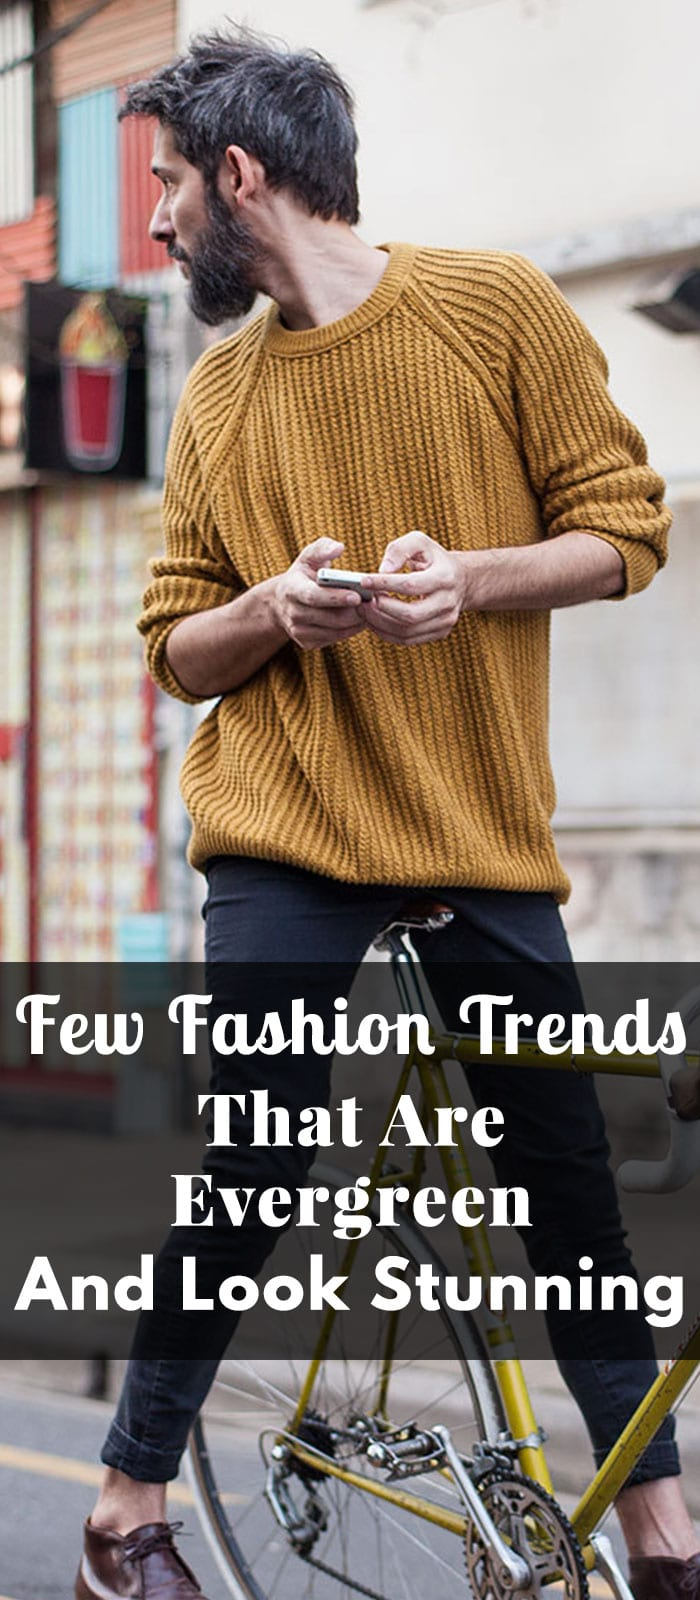 Few Fashion Trends That Are Evergreen And Look Stunning